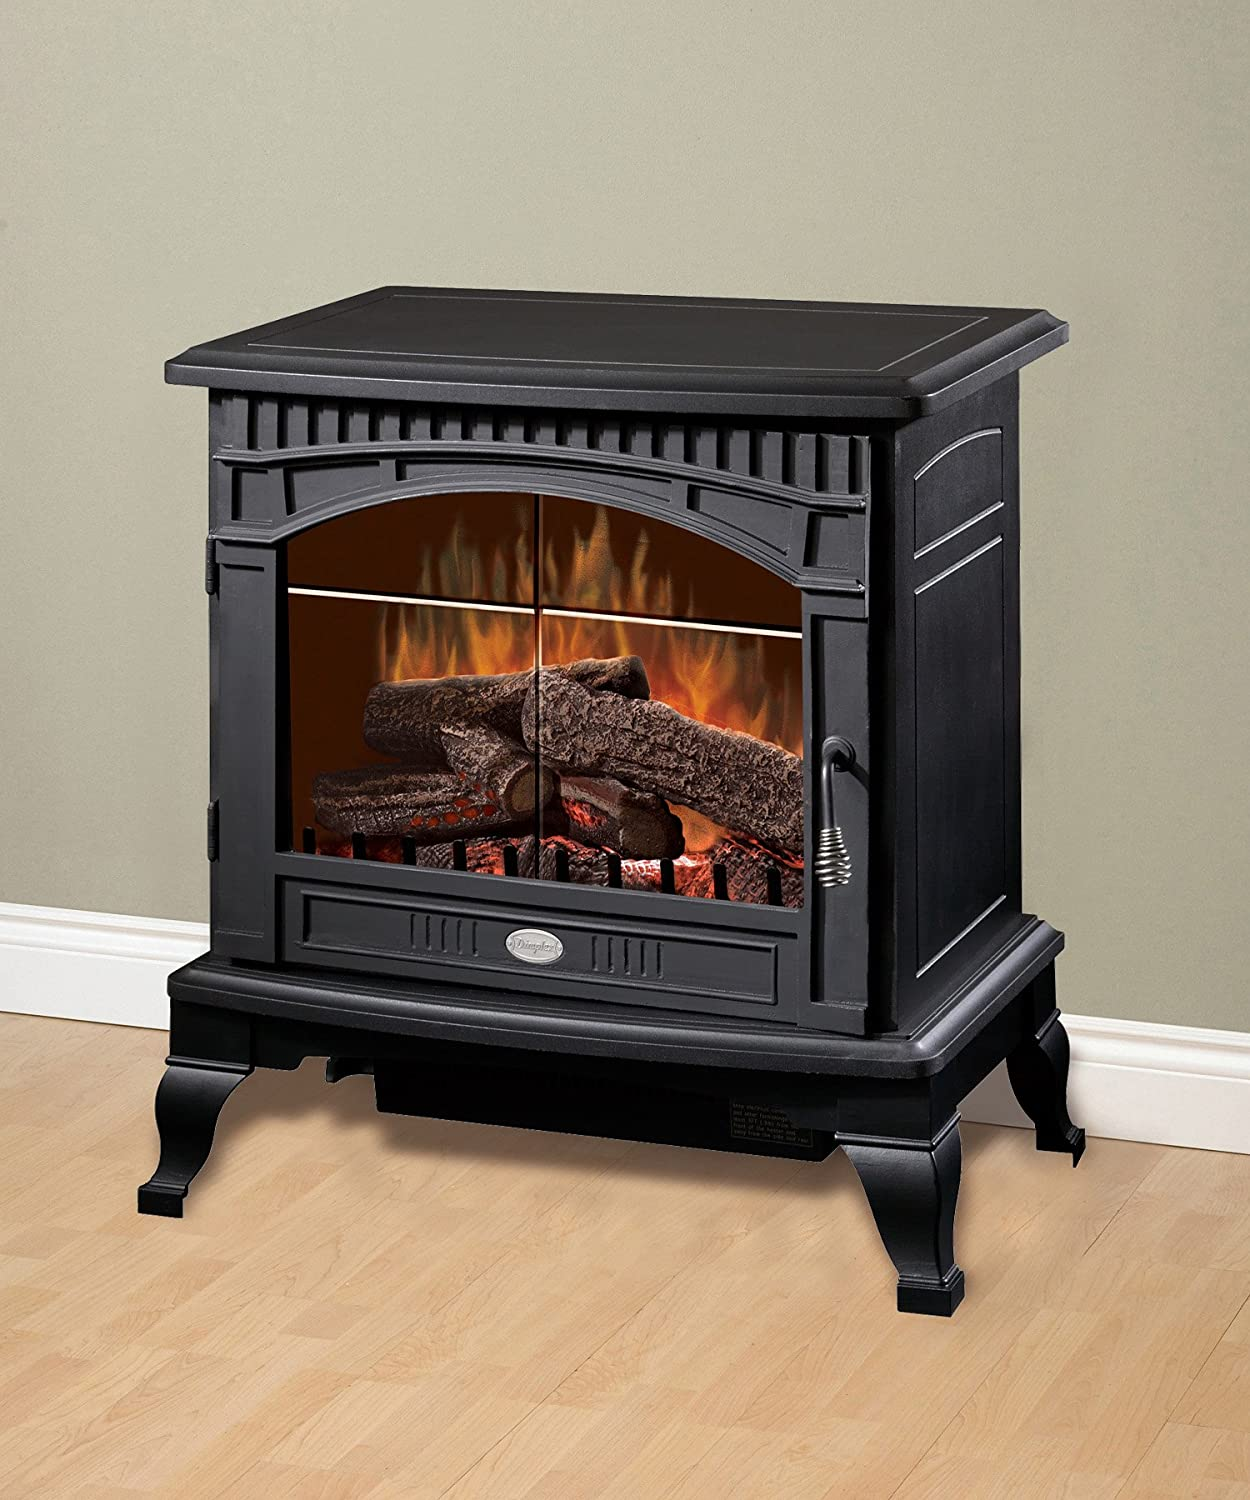 efca products electric dimplex fireplaces caprice oak package mantel accessories fireplace in finishes